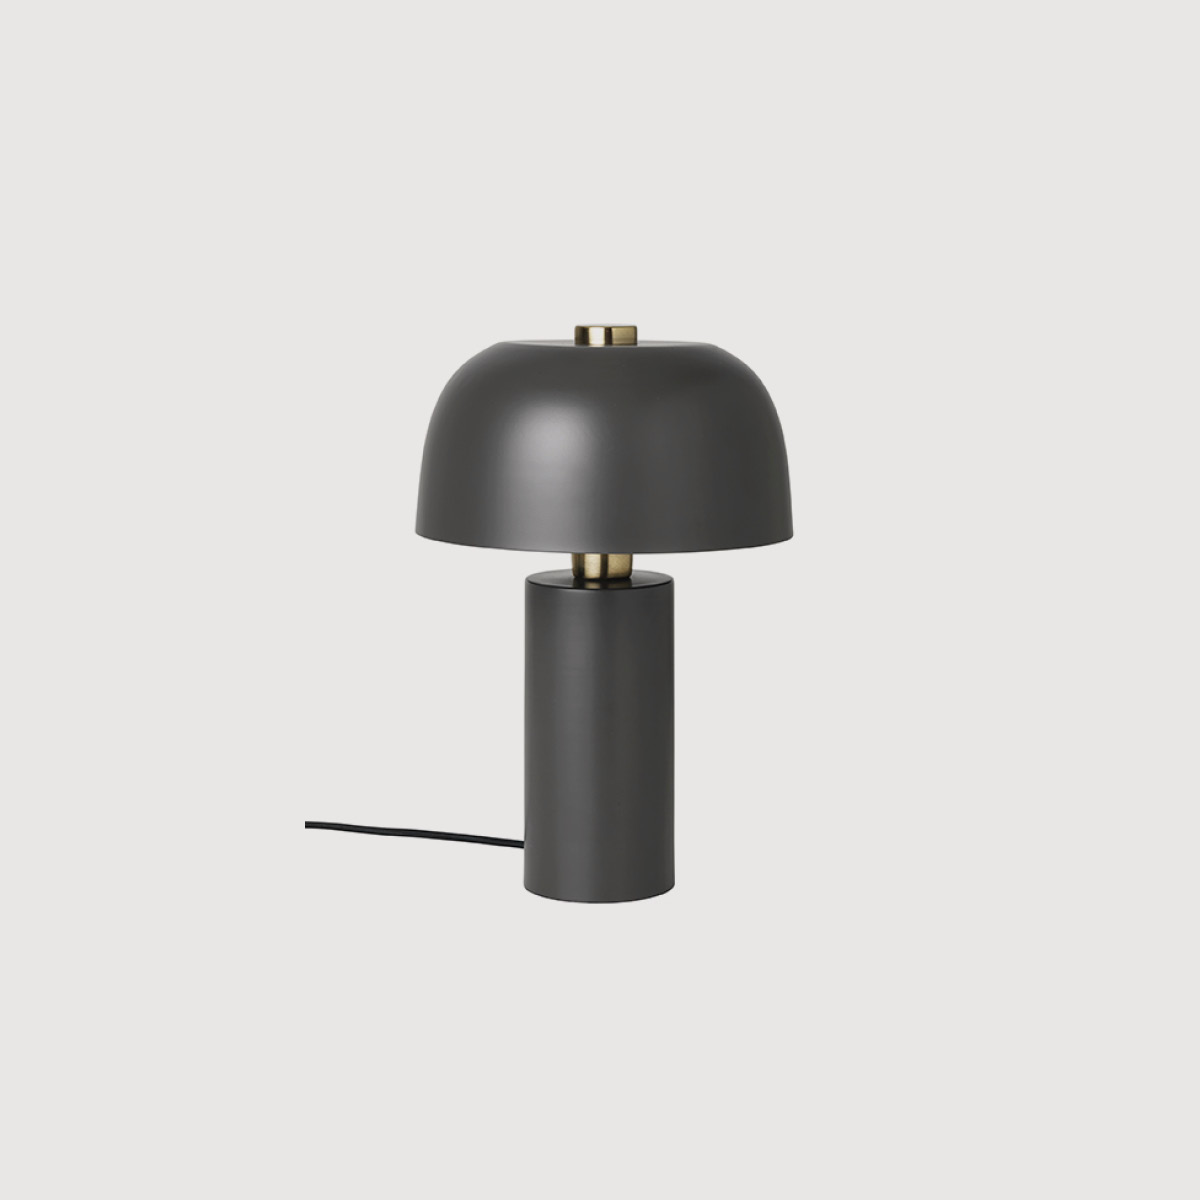 CHARCOAL brass table lamp